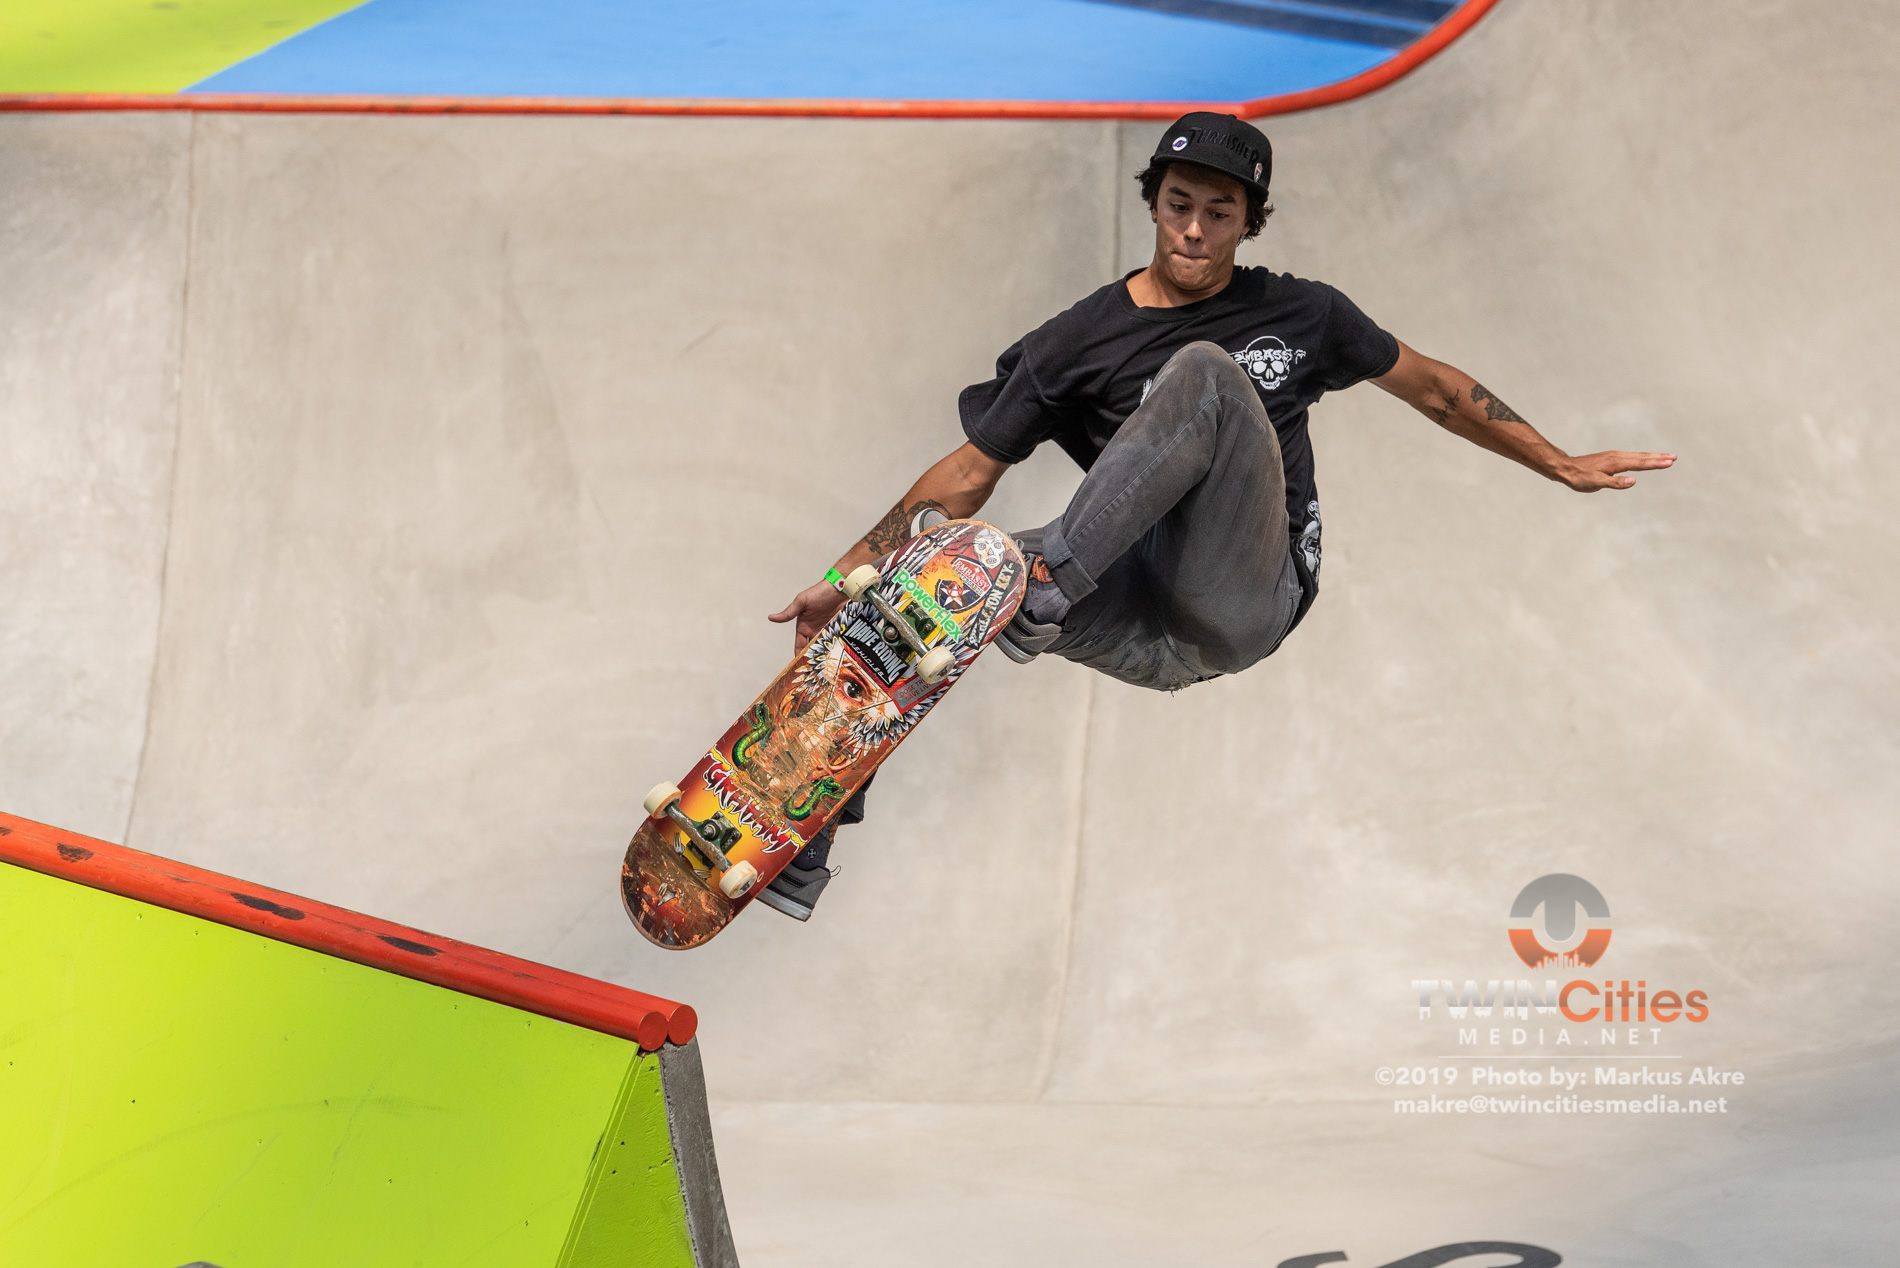 2019-X-Games-Day-4-Mens-Skateboard-Park-10